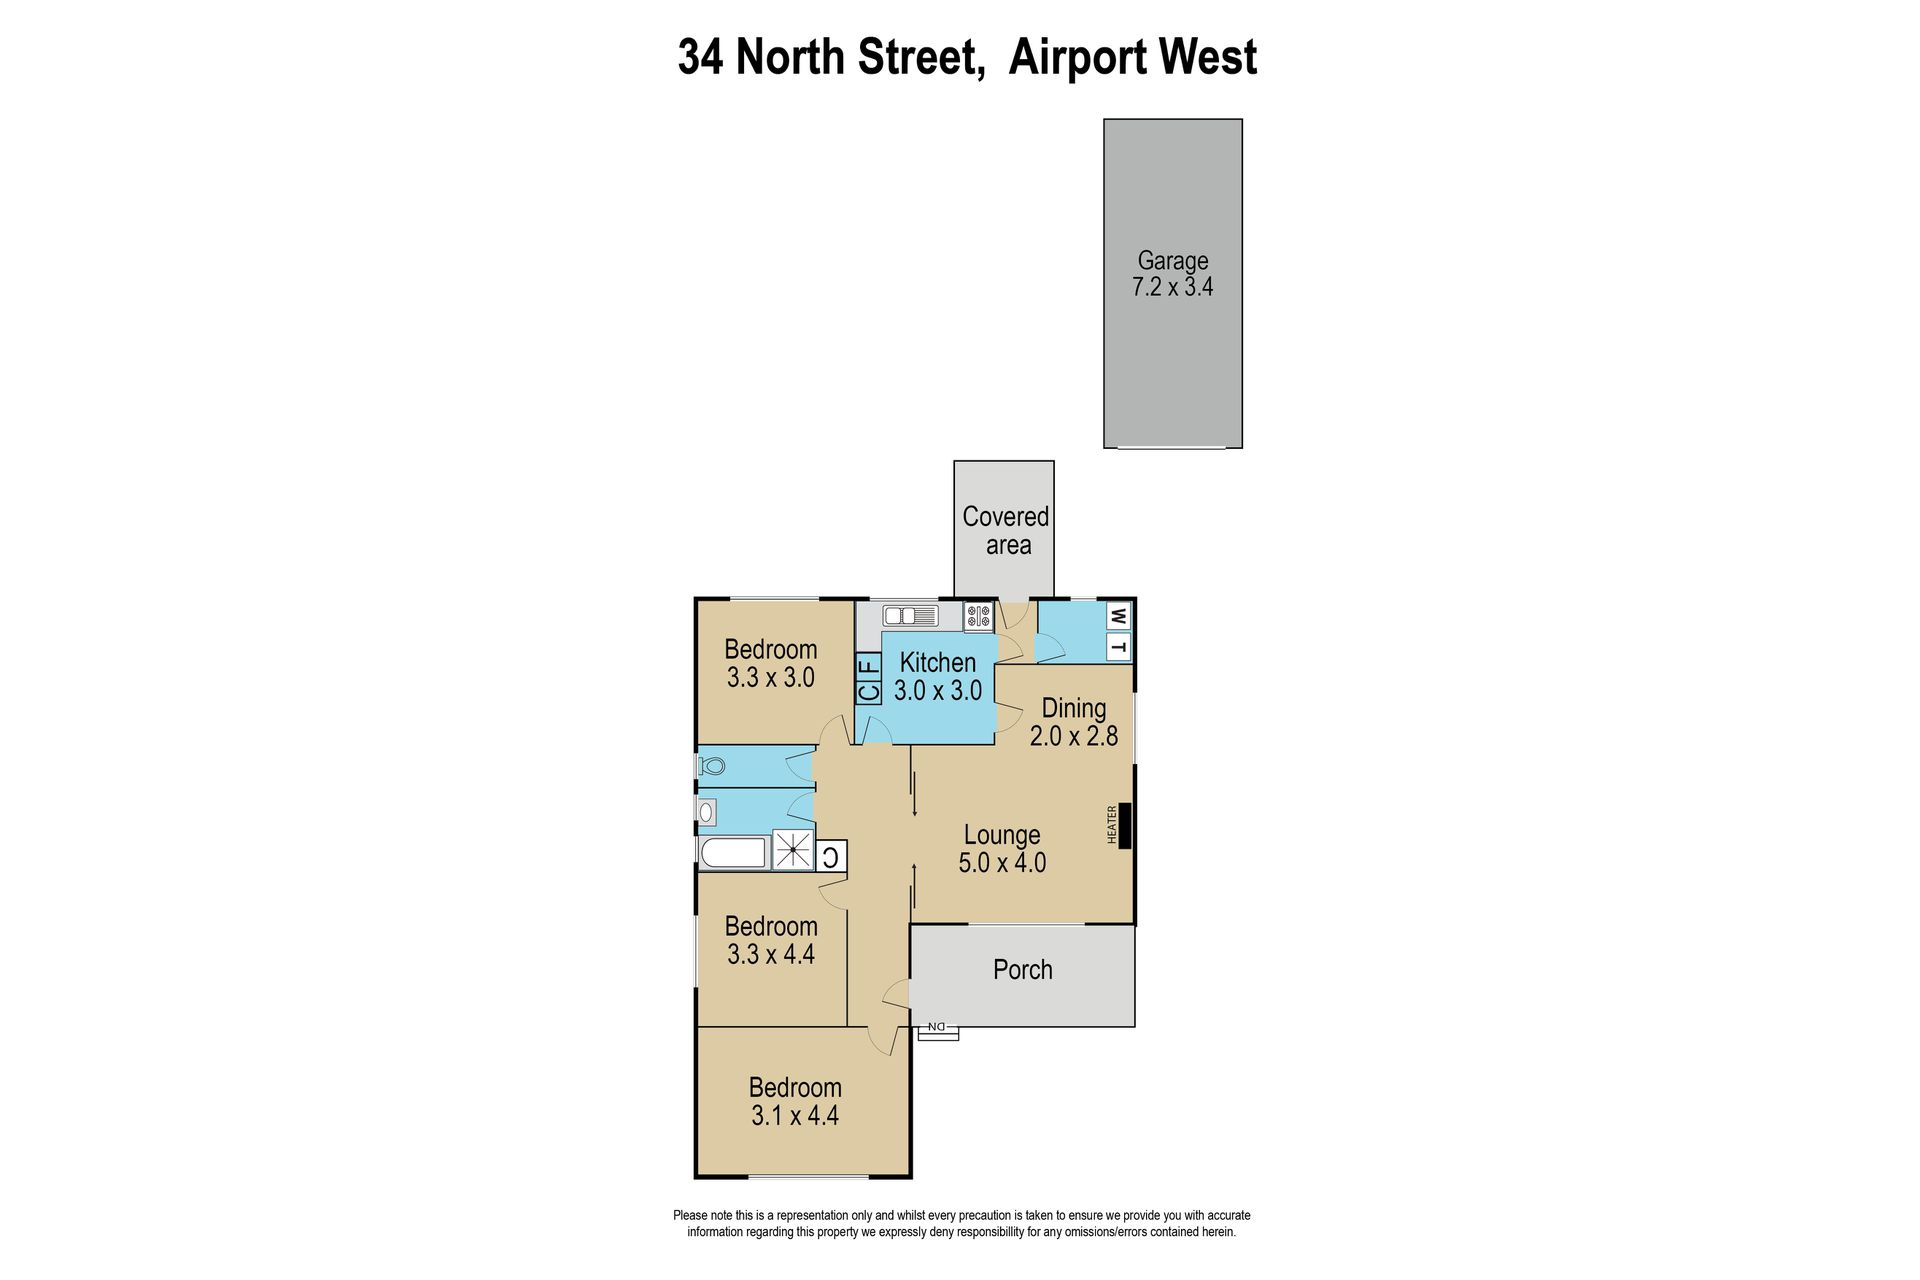 34 North Street, Airport West